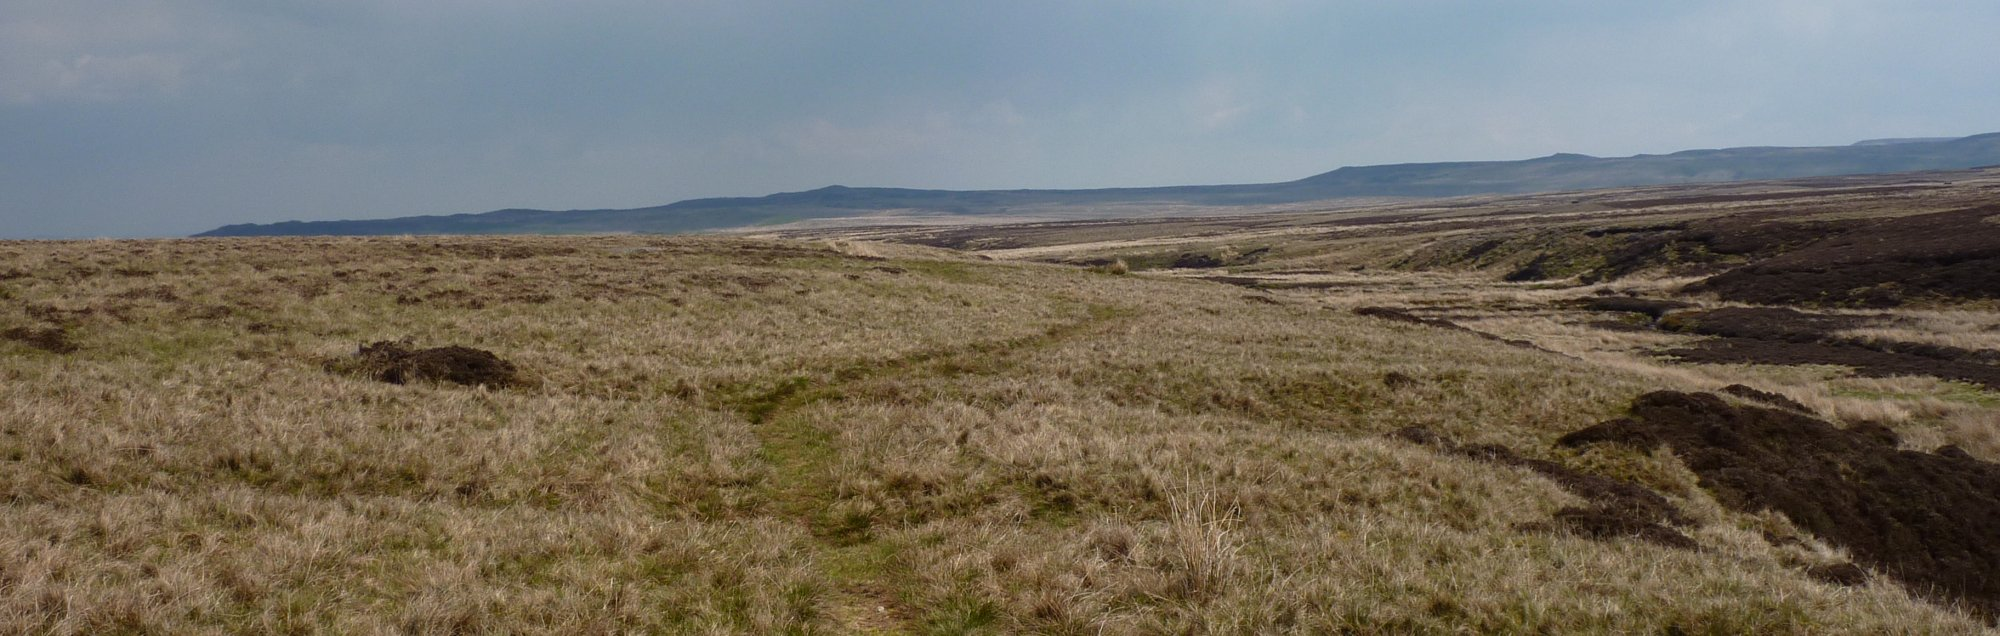 Views of Sleightholme Moor - a great place, unless it's rained in the past 3 months